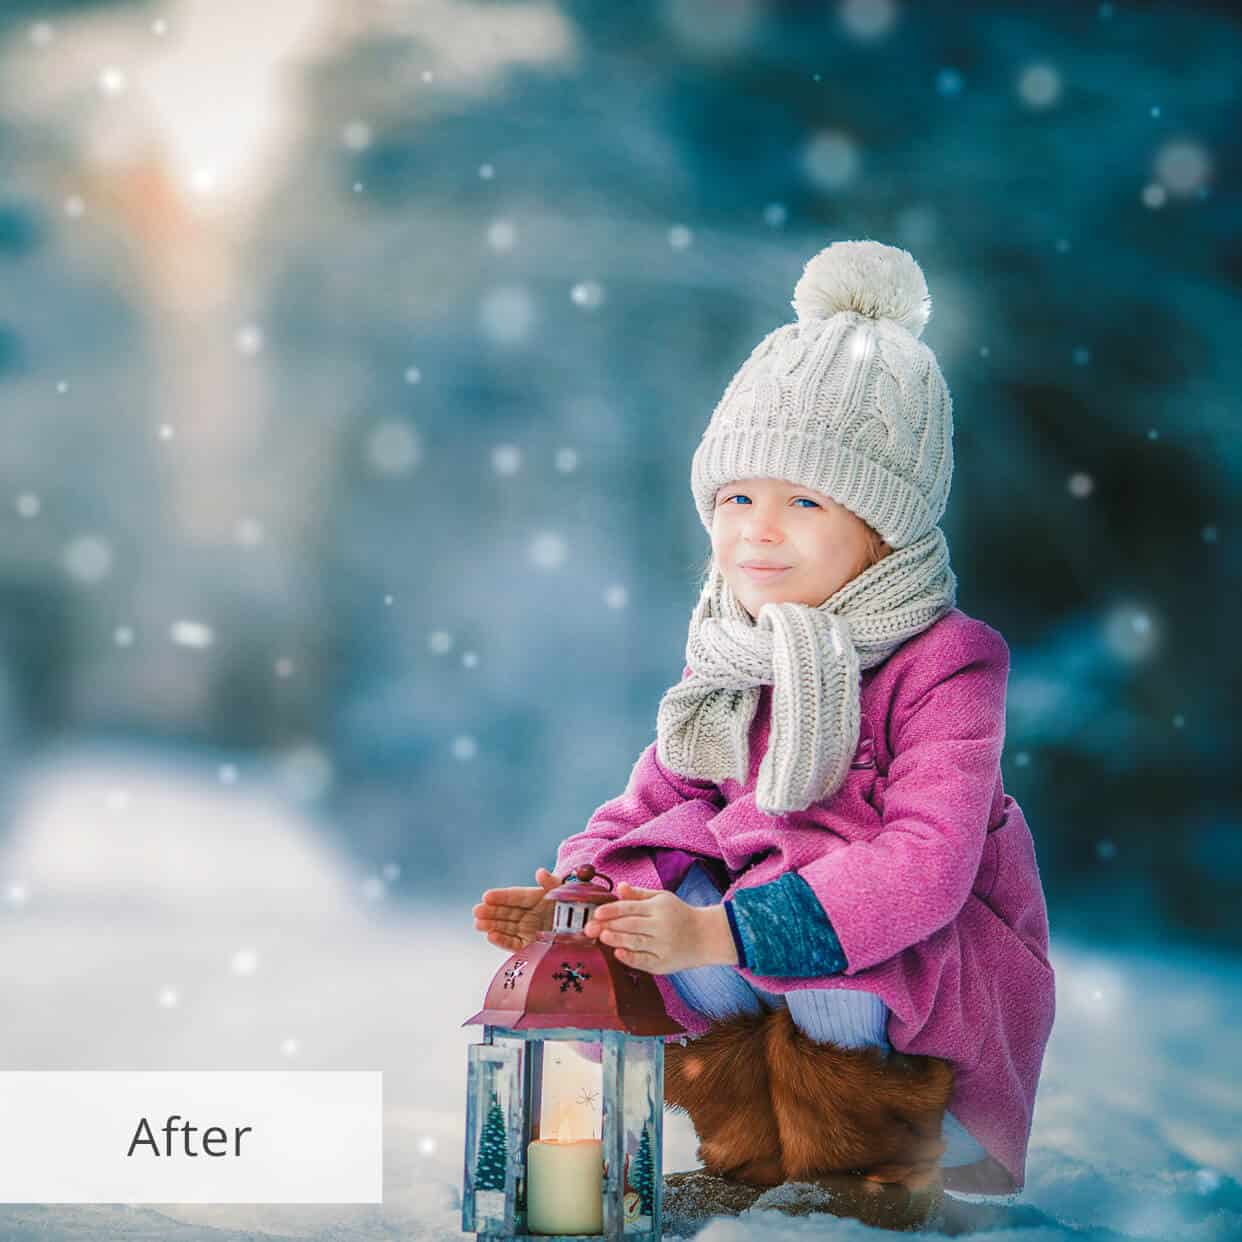 Preset Snow Miracle for lightroom